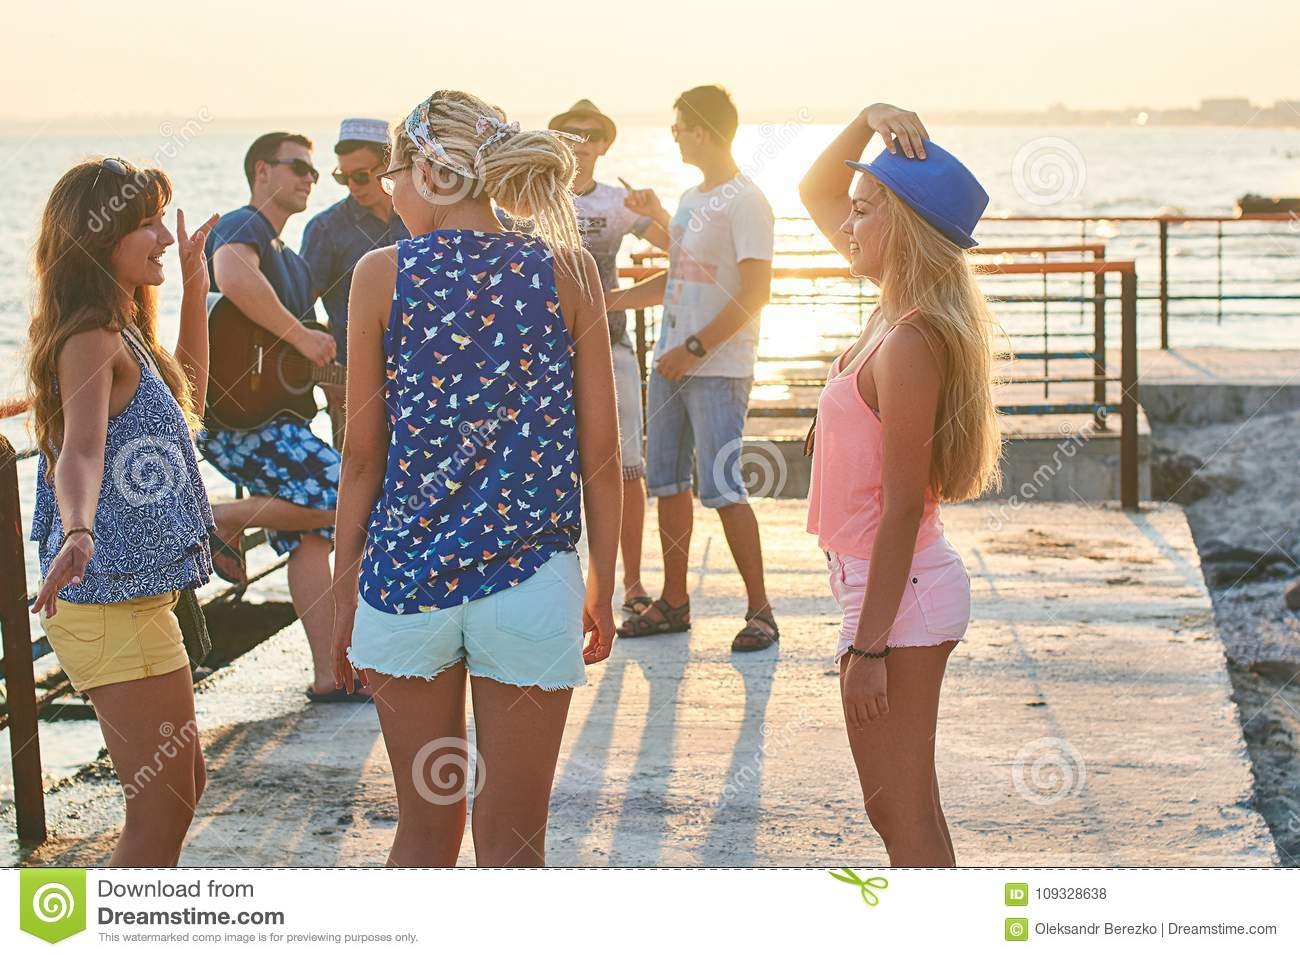 Cheerful and carefree group of friends hanging out at the sunny summer seaside on their vacation